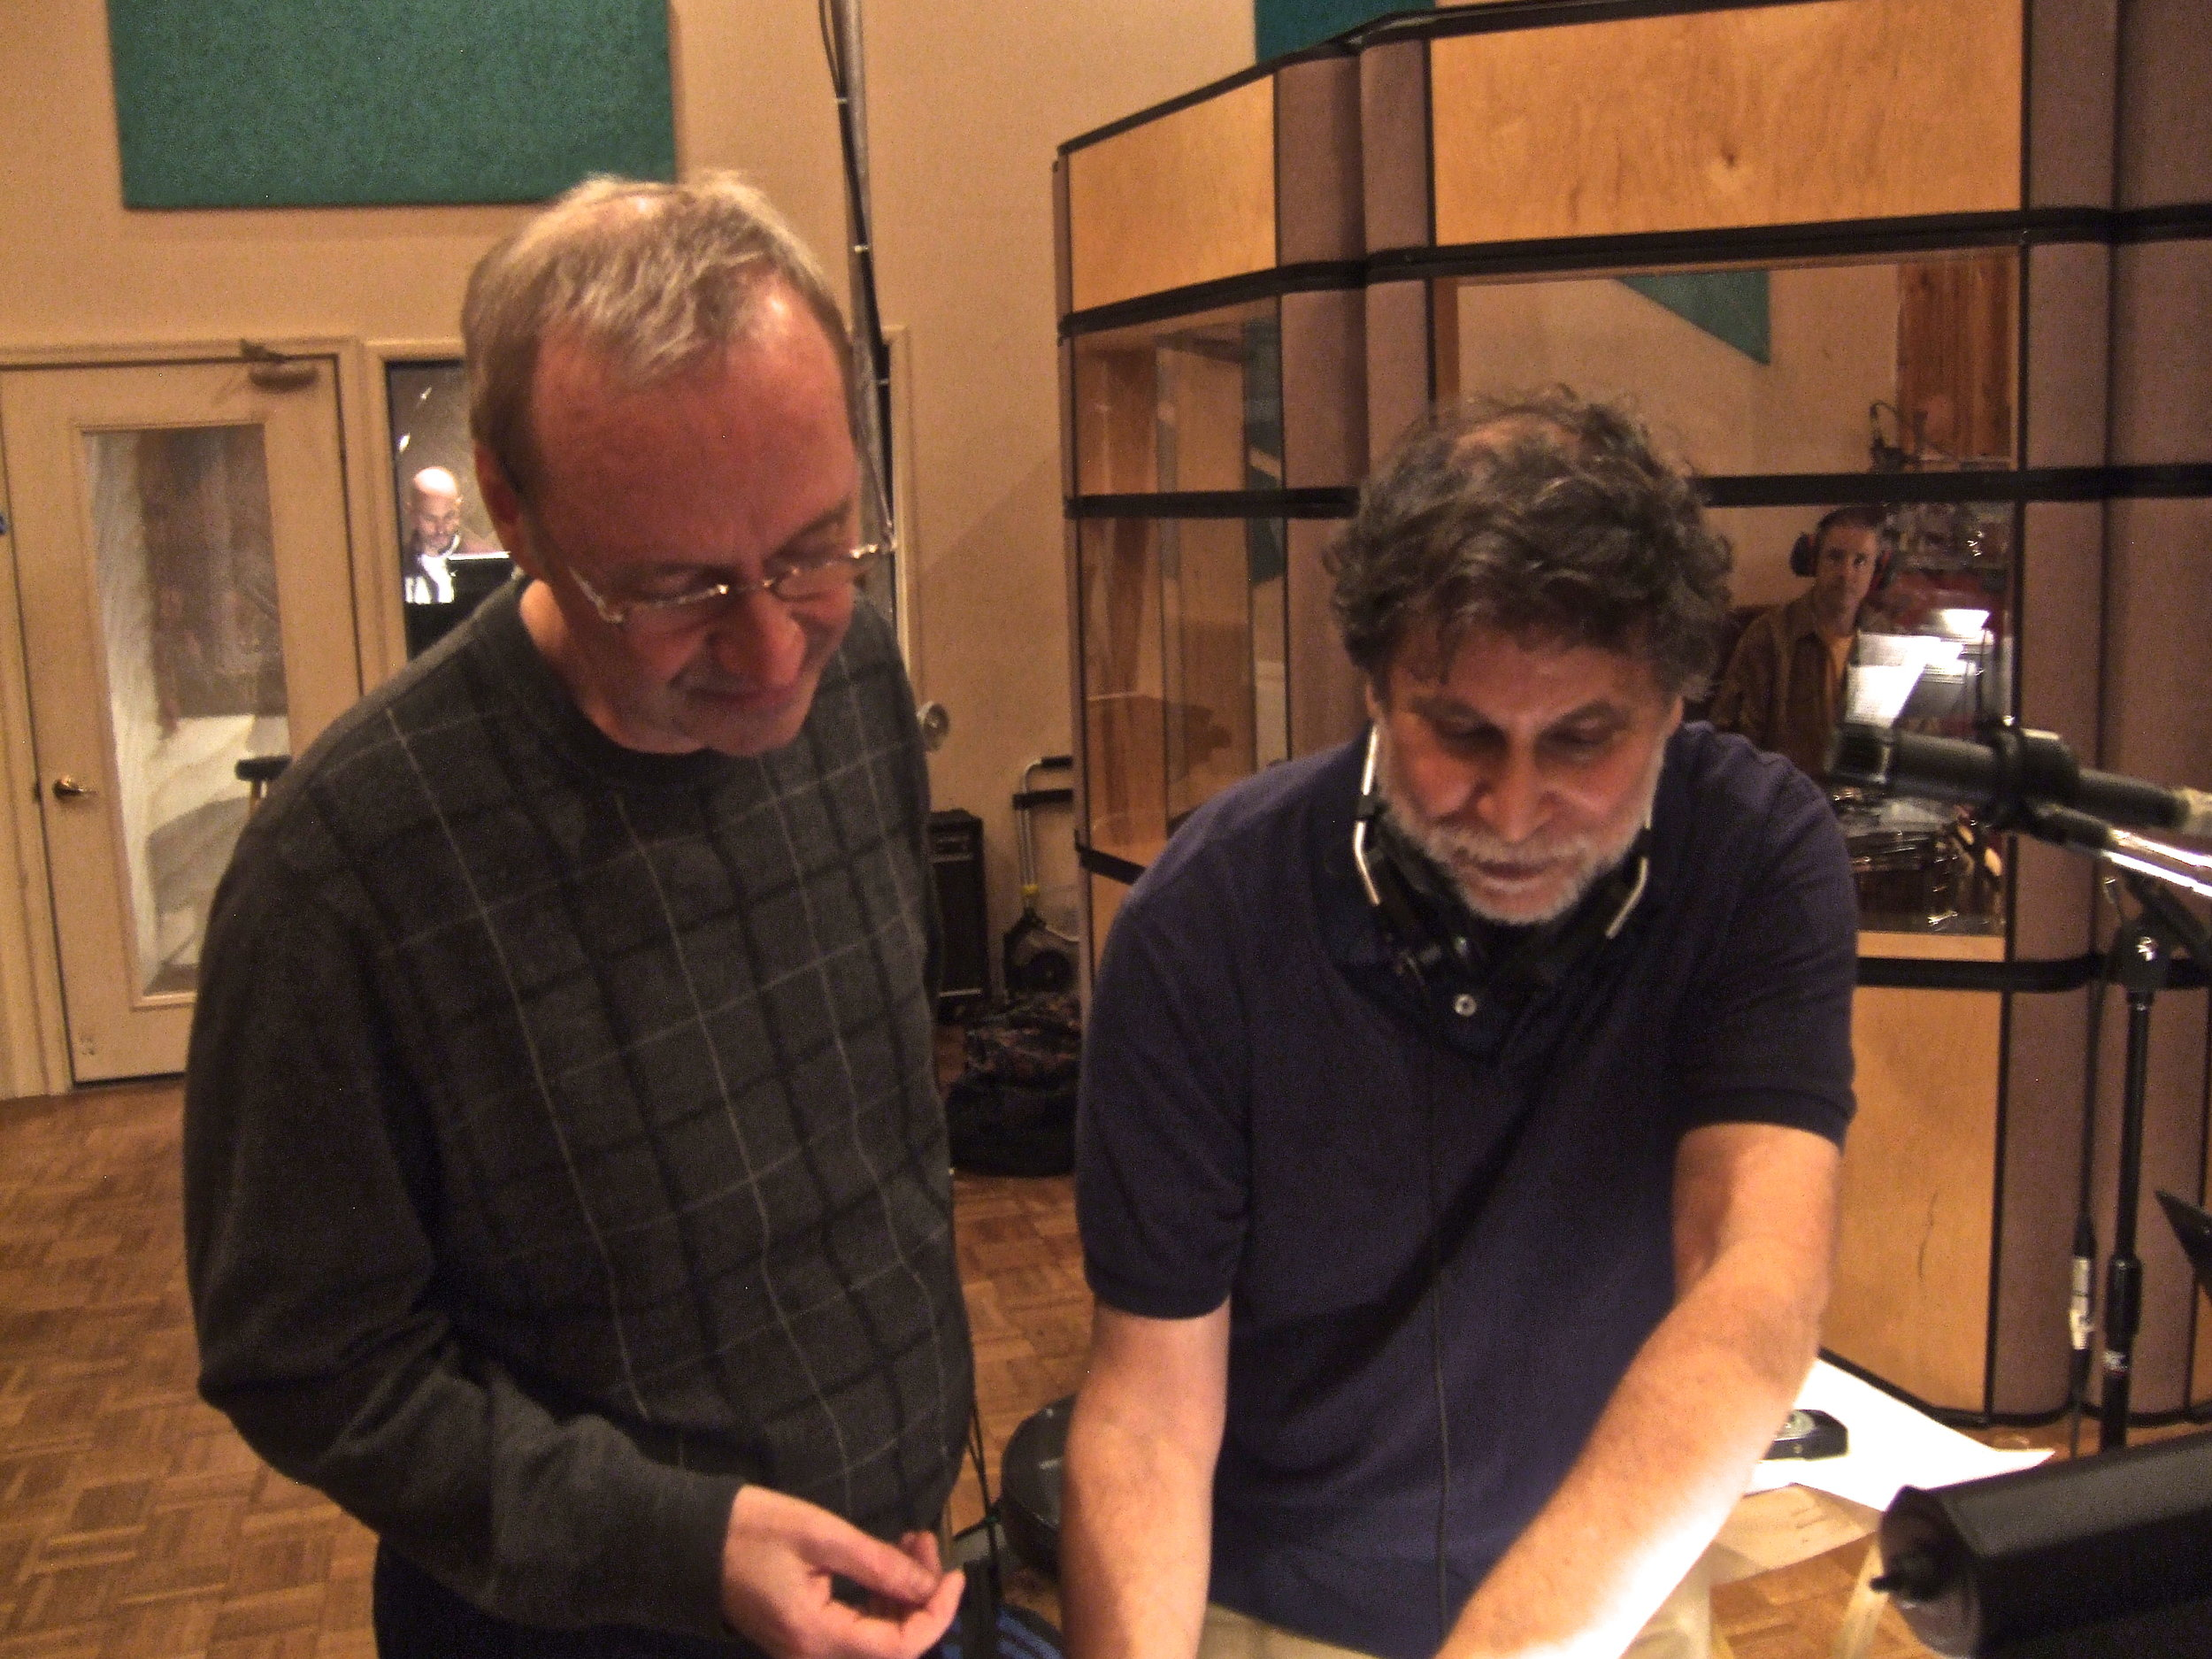 Producer Pete McGuinness instructs Brett Gold on how to avoid screwing things up even more.